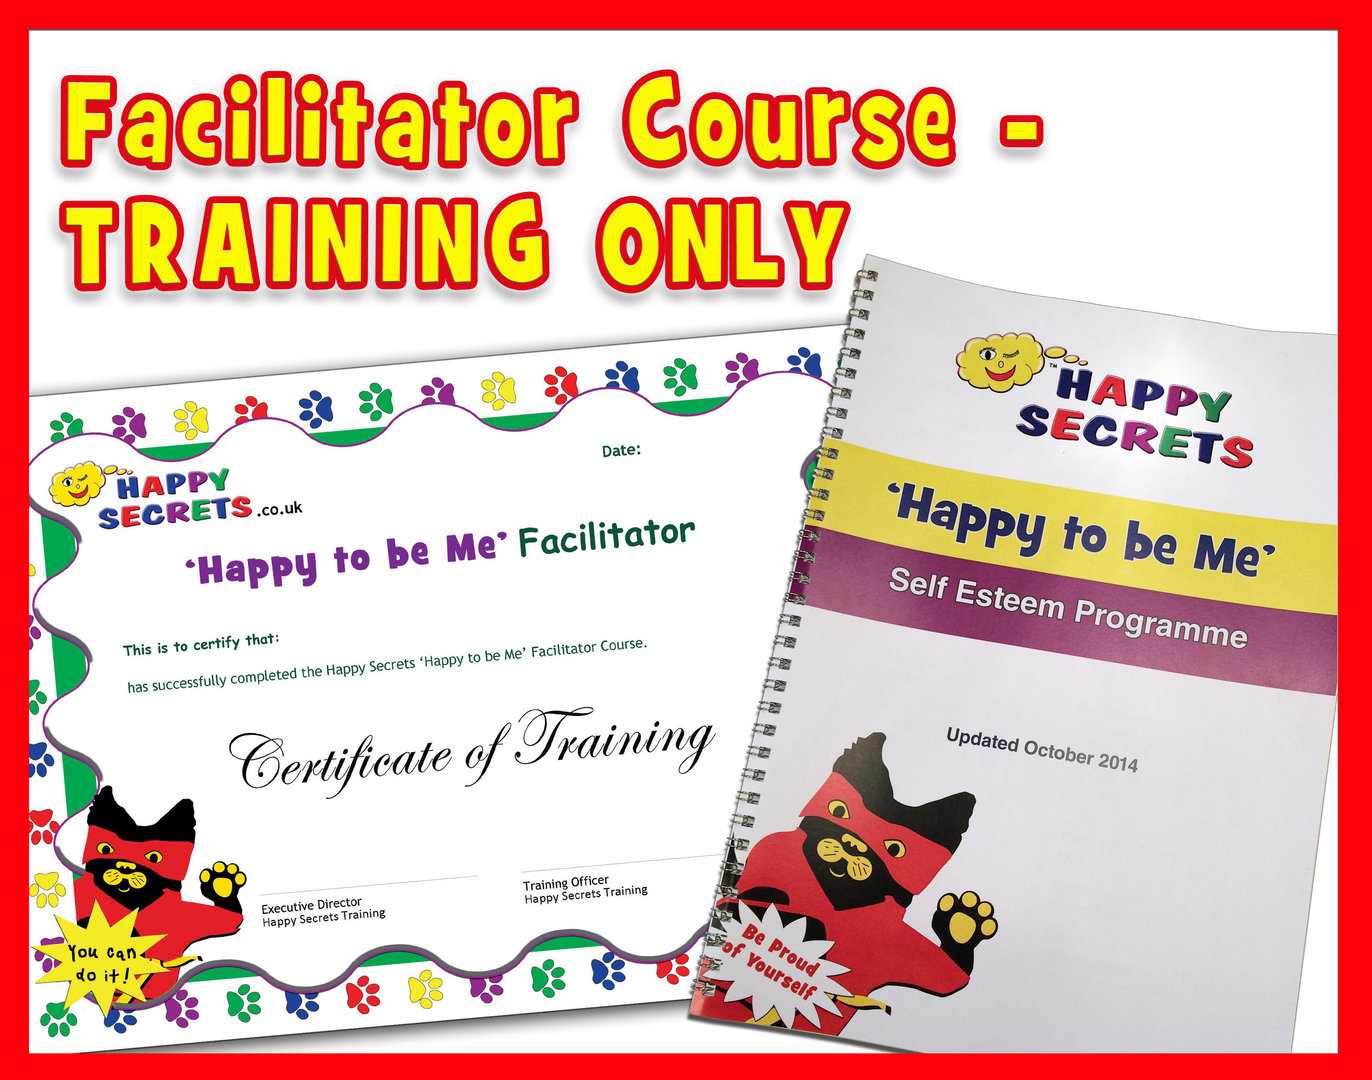 'Happy to be Me' - Facilitator Training Only - Self-Esteem Nurture Group Programme - NO Resources